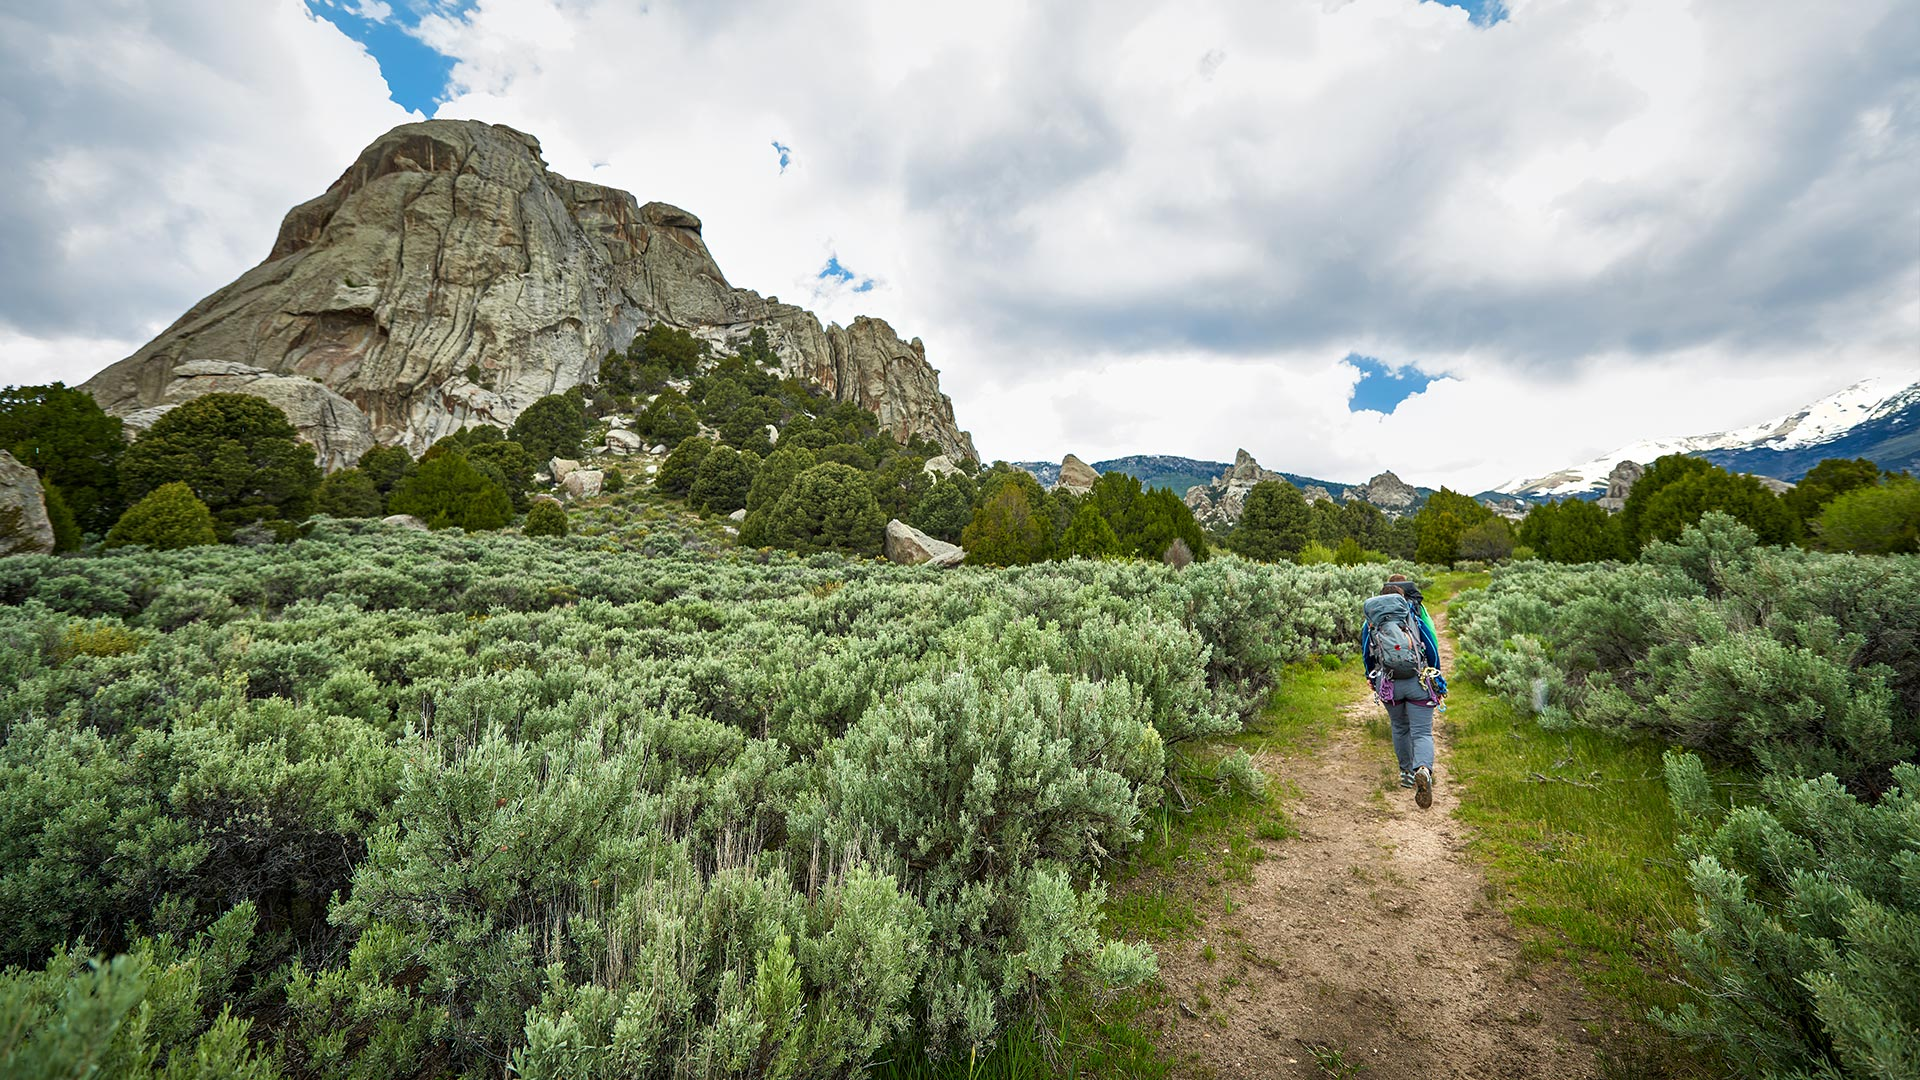 Hiking Castle Rocks State Park in Almo, ID